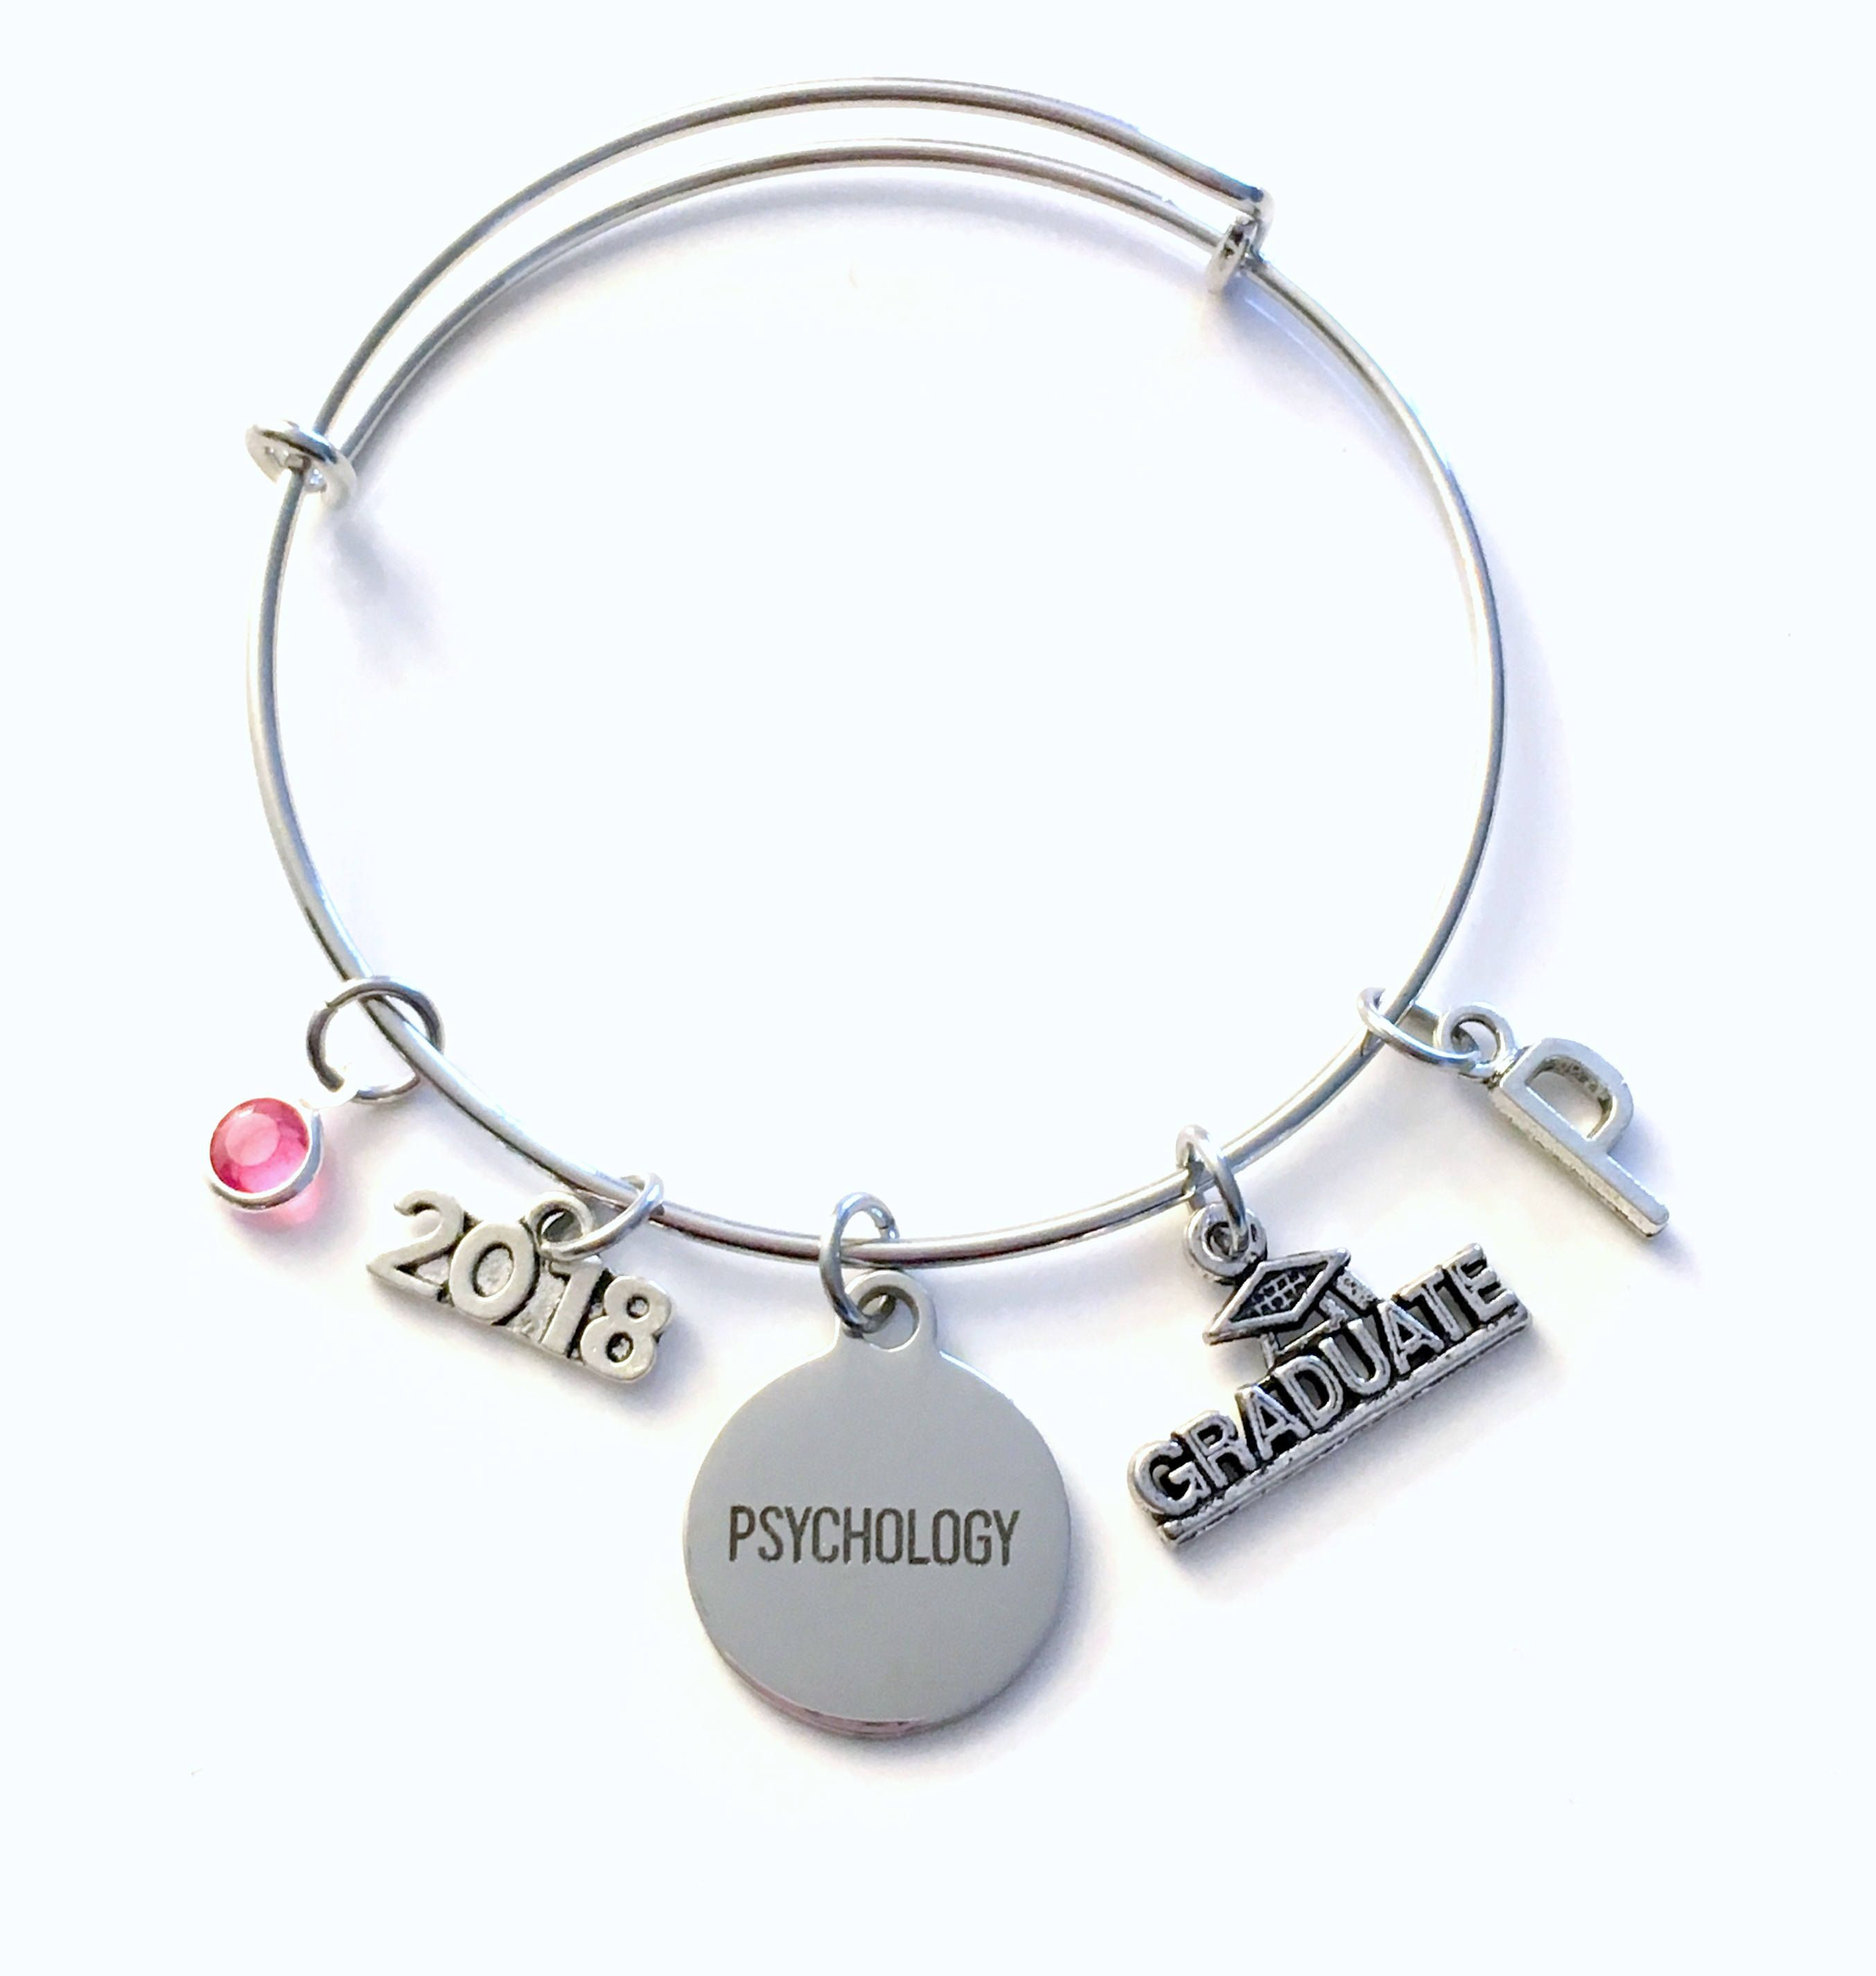 Gift For Psychology Graduation Bracelet 2017 2018 Student Grad Silver Bangle University Jewelry College Charm Psychologist Her Woman Women By